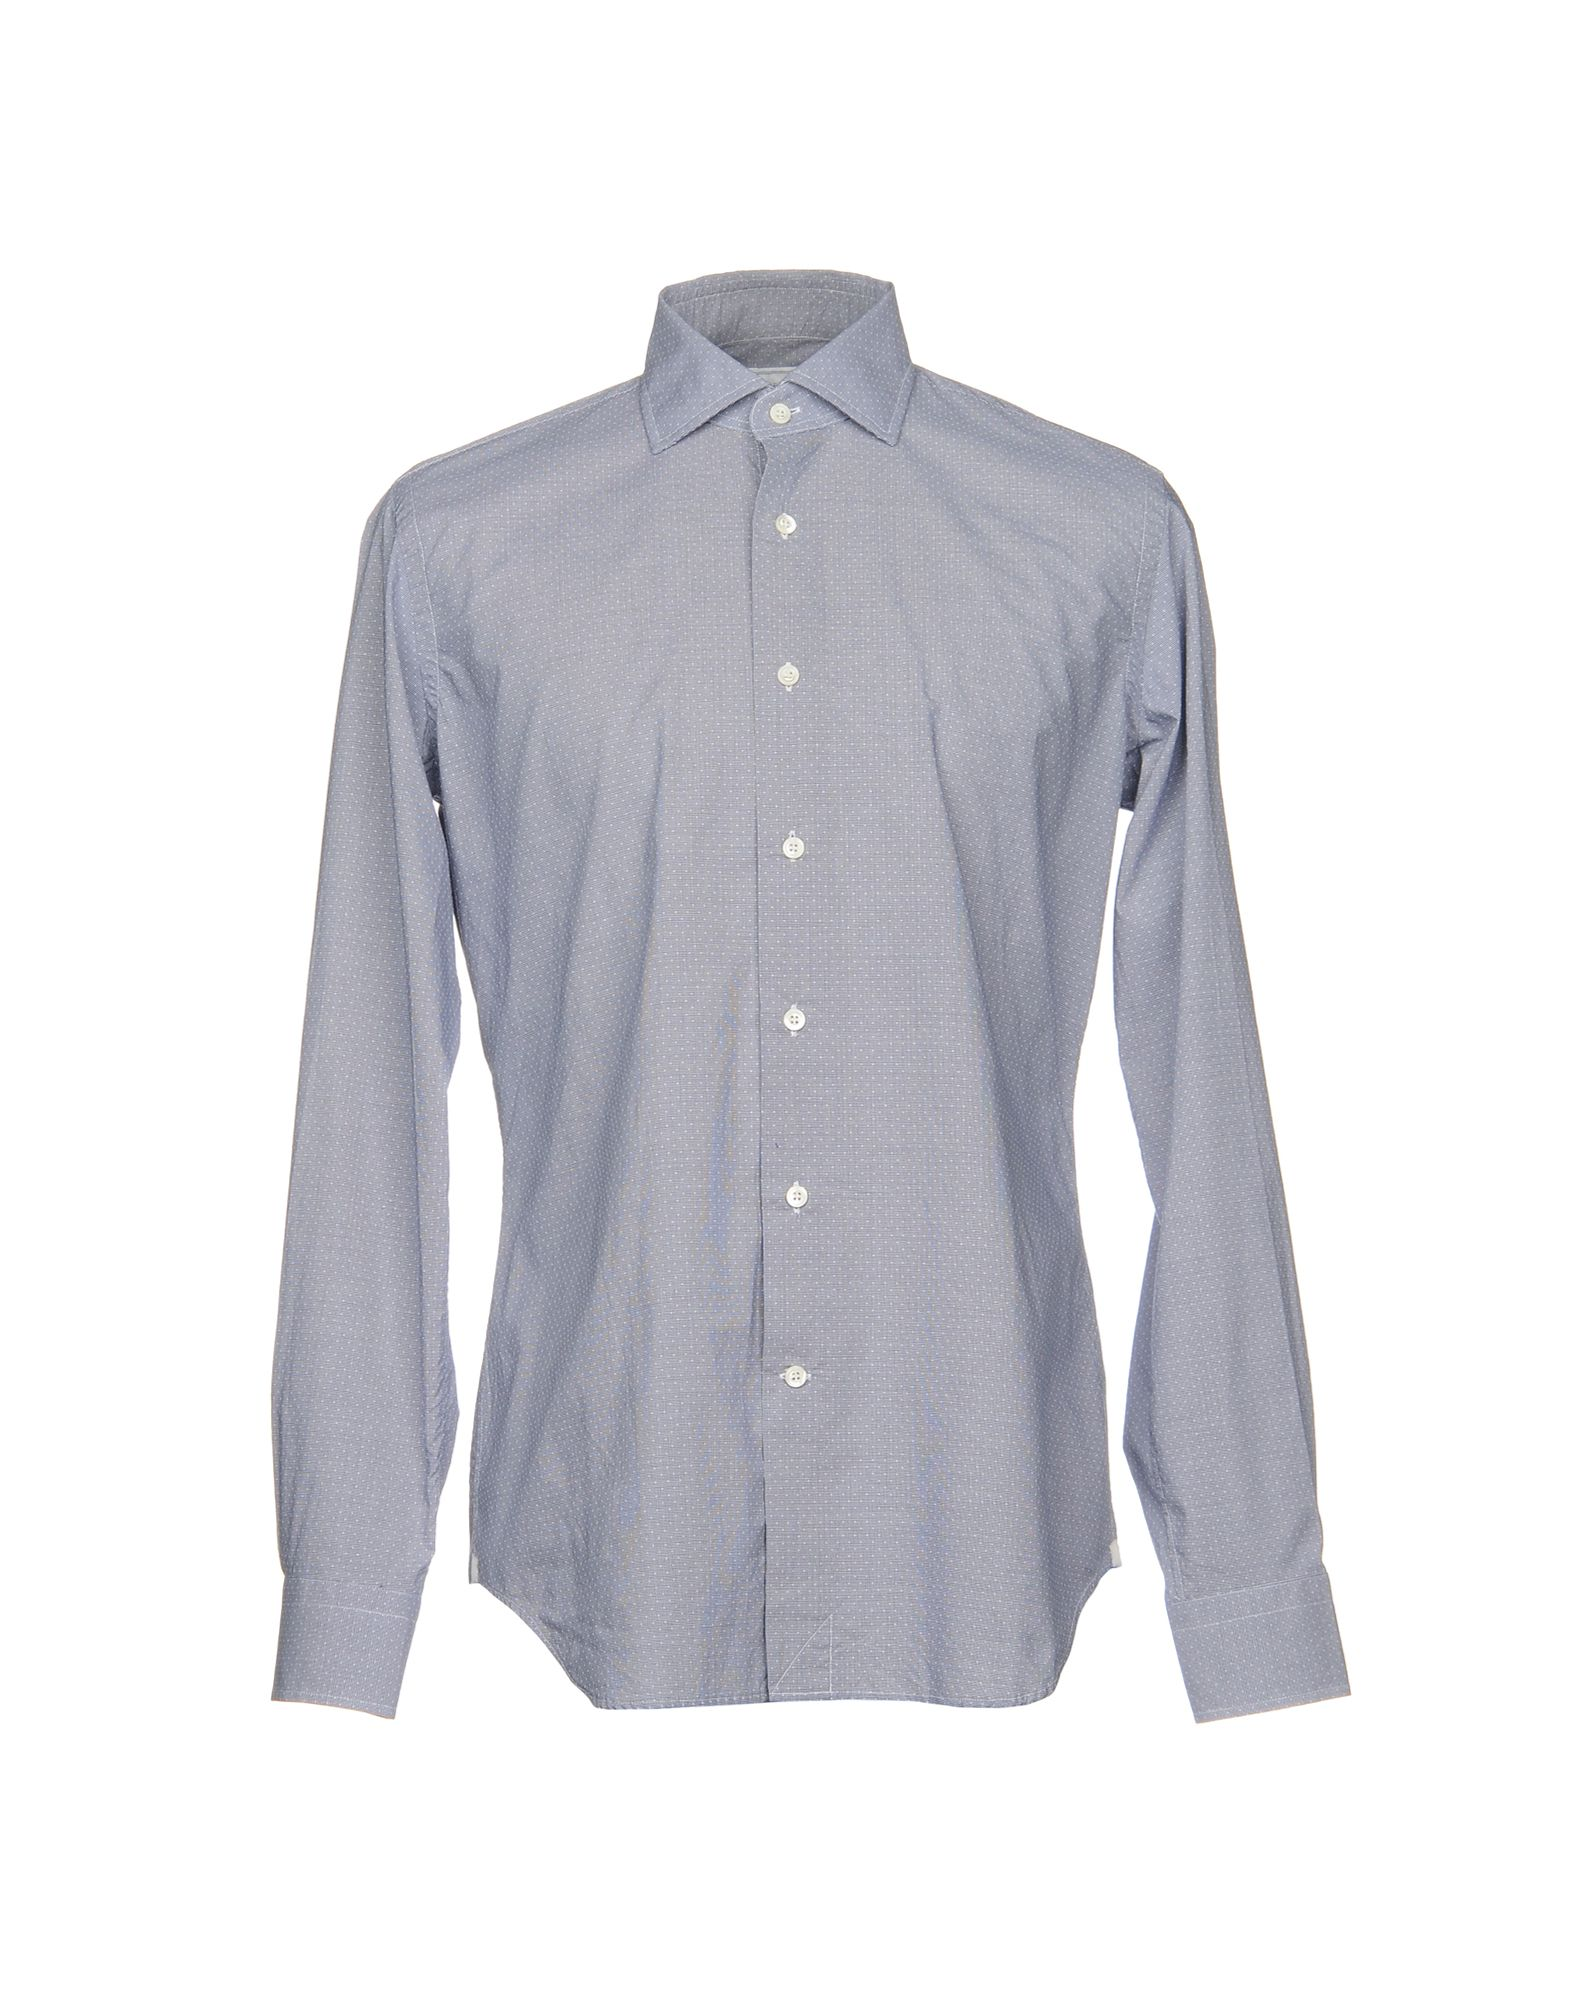 LEXINGTON Patterned Shirt in Slate Blue